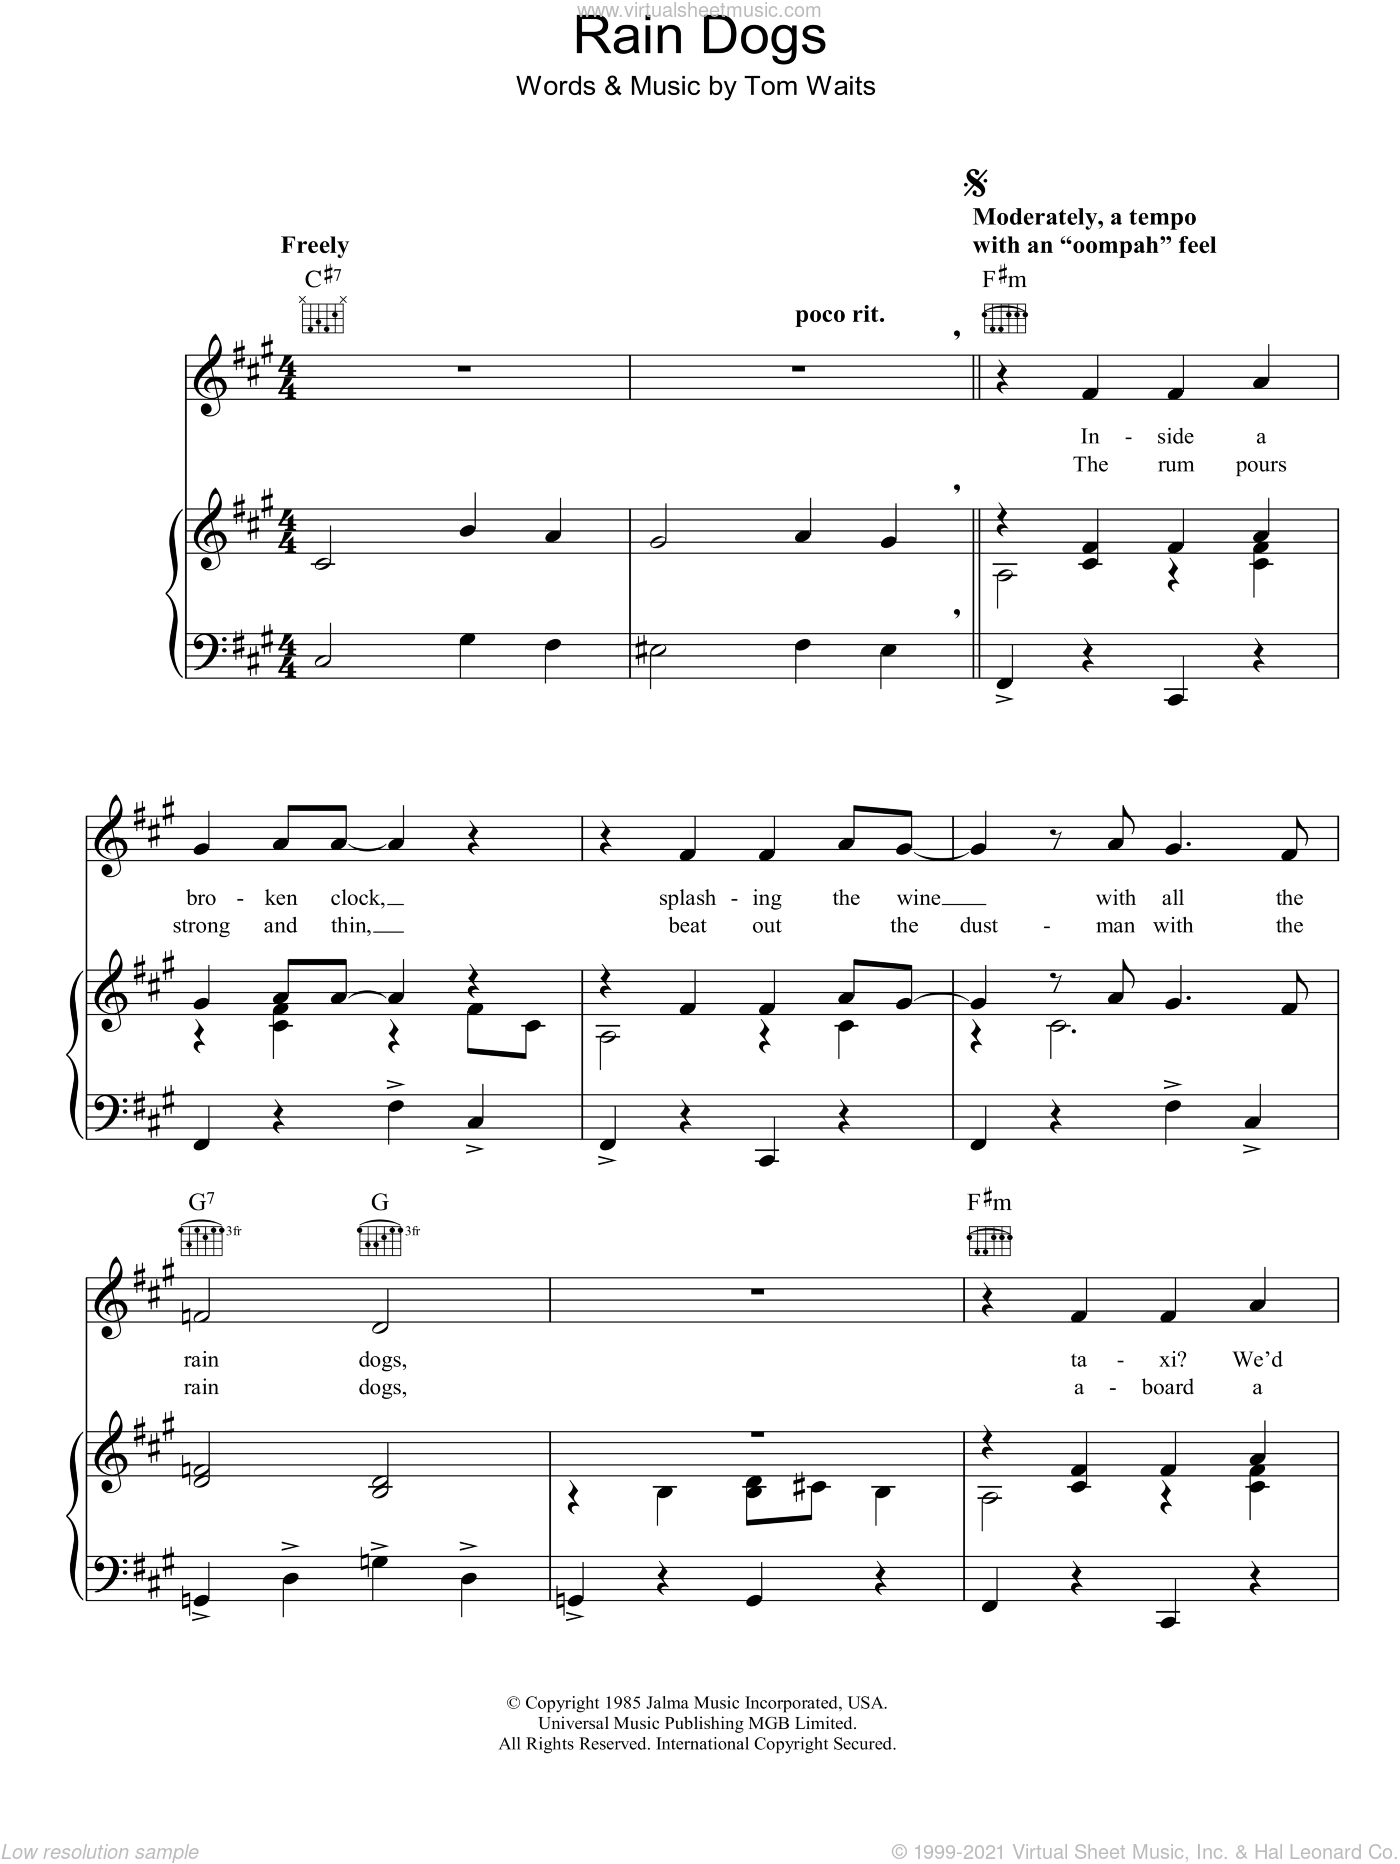 Rain Dogs sheet music for voice, piano or guitar by Tom Waits, intermediate